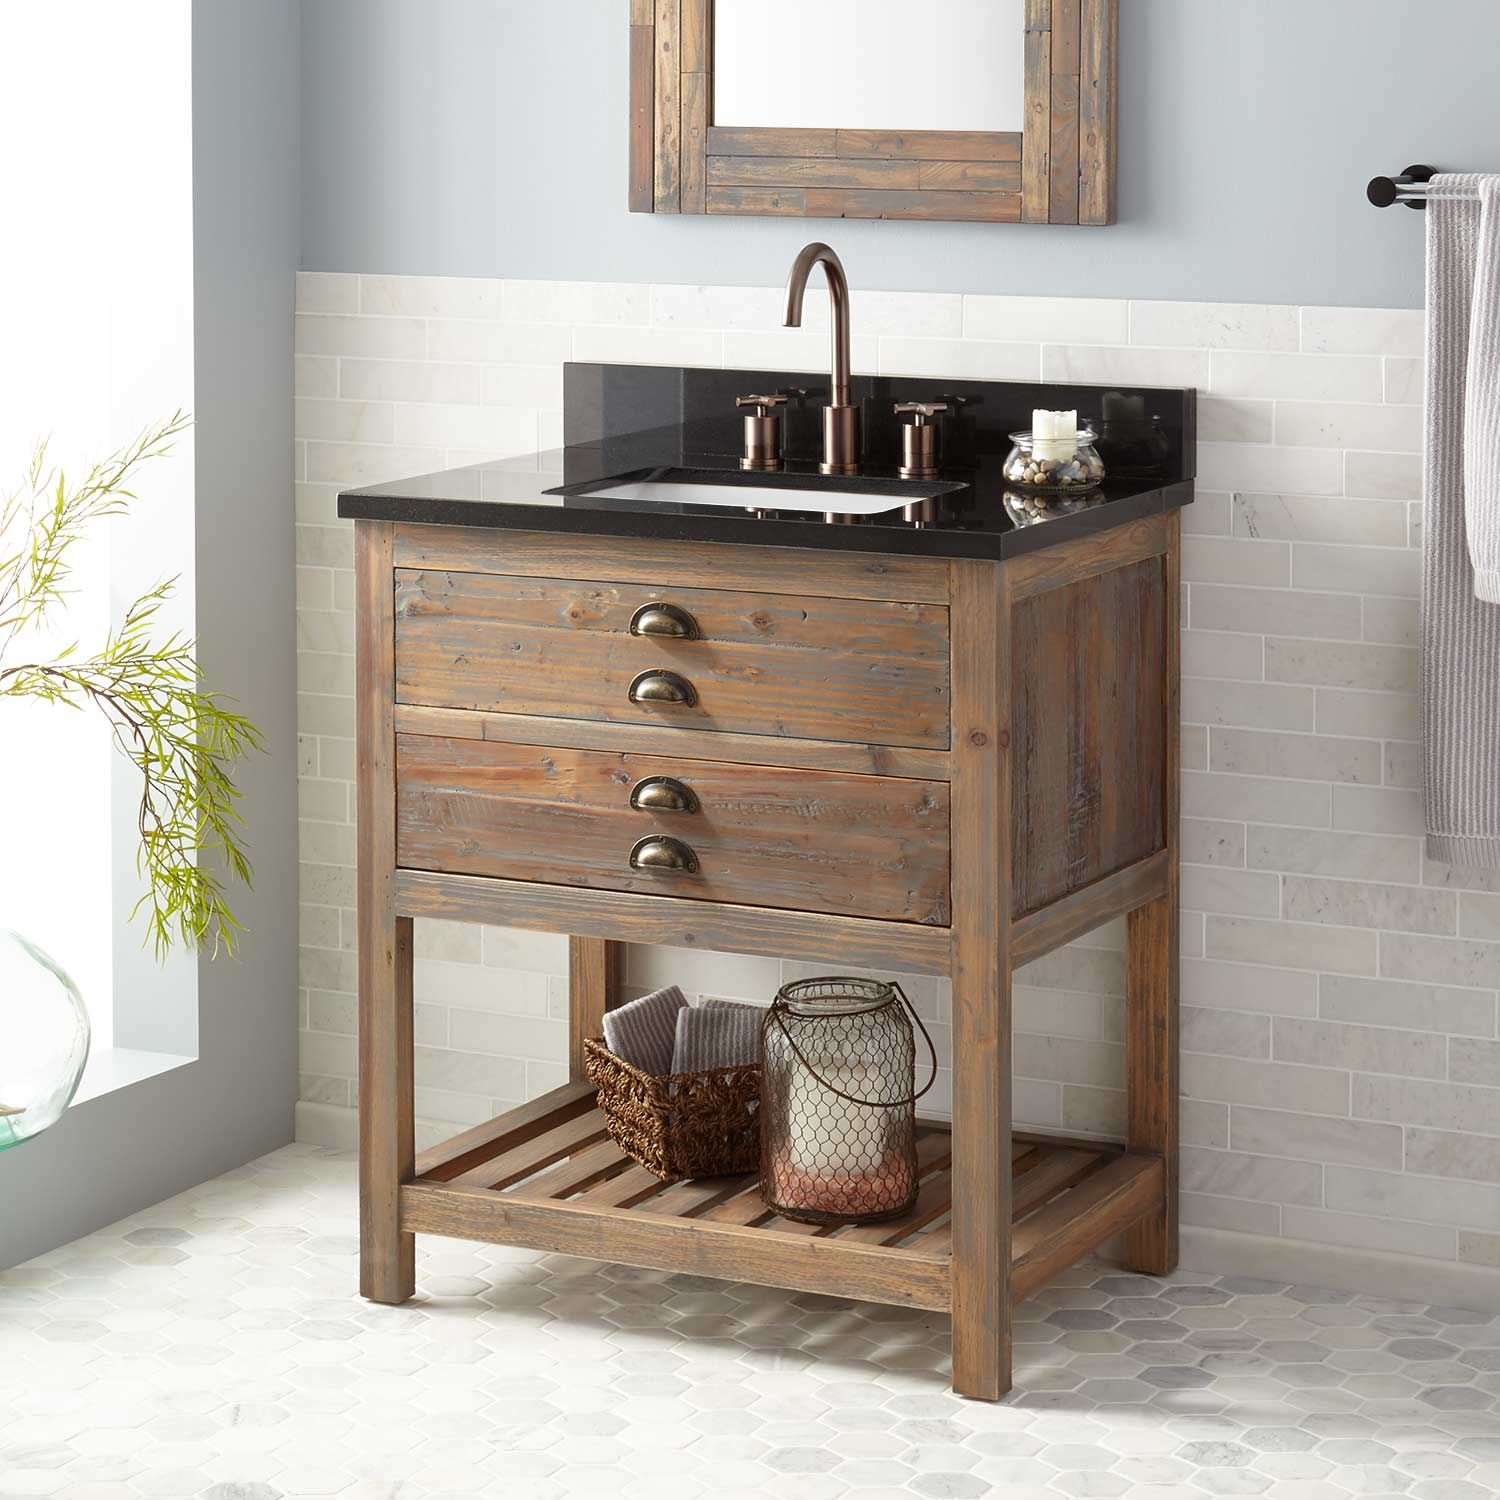 Search Results For Benoist Vessel Sink Vanity Bathroom Vanity Wood Console